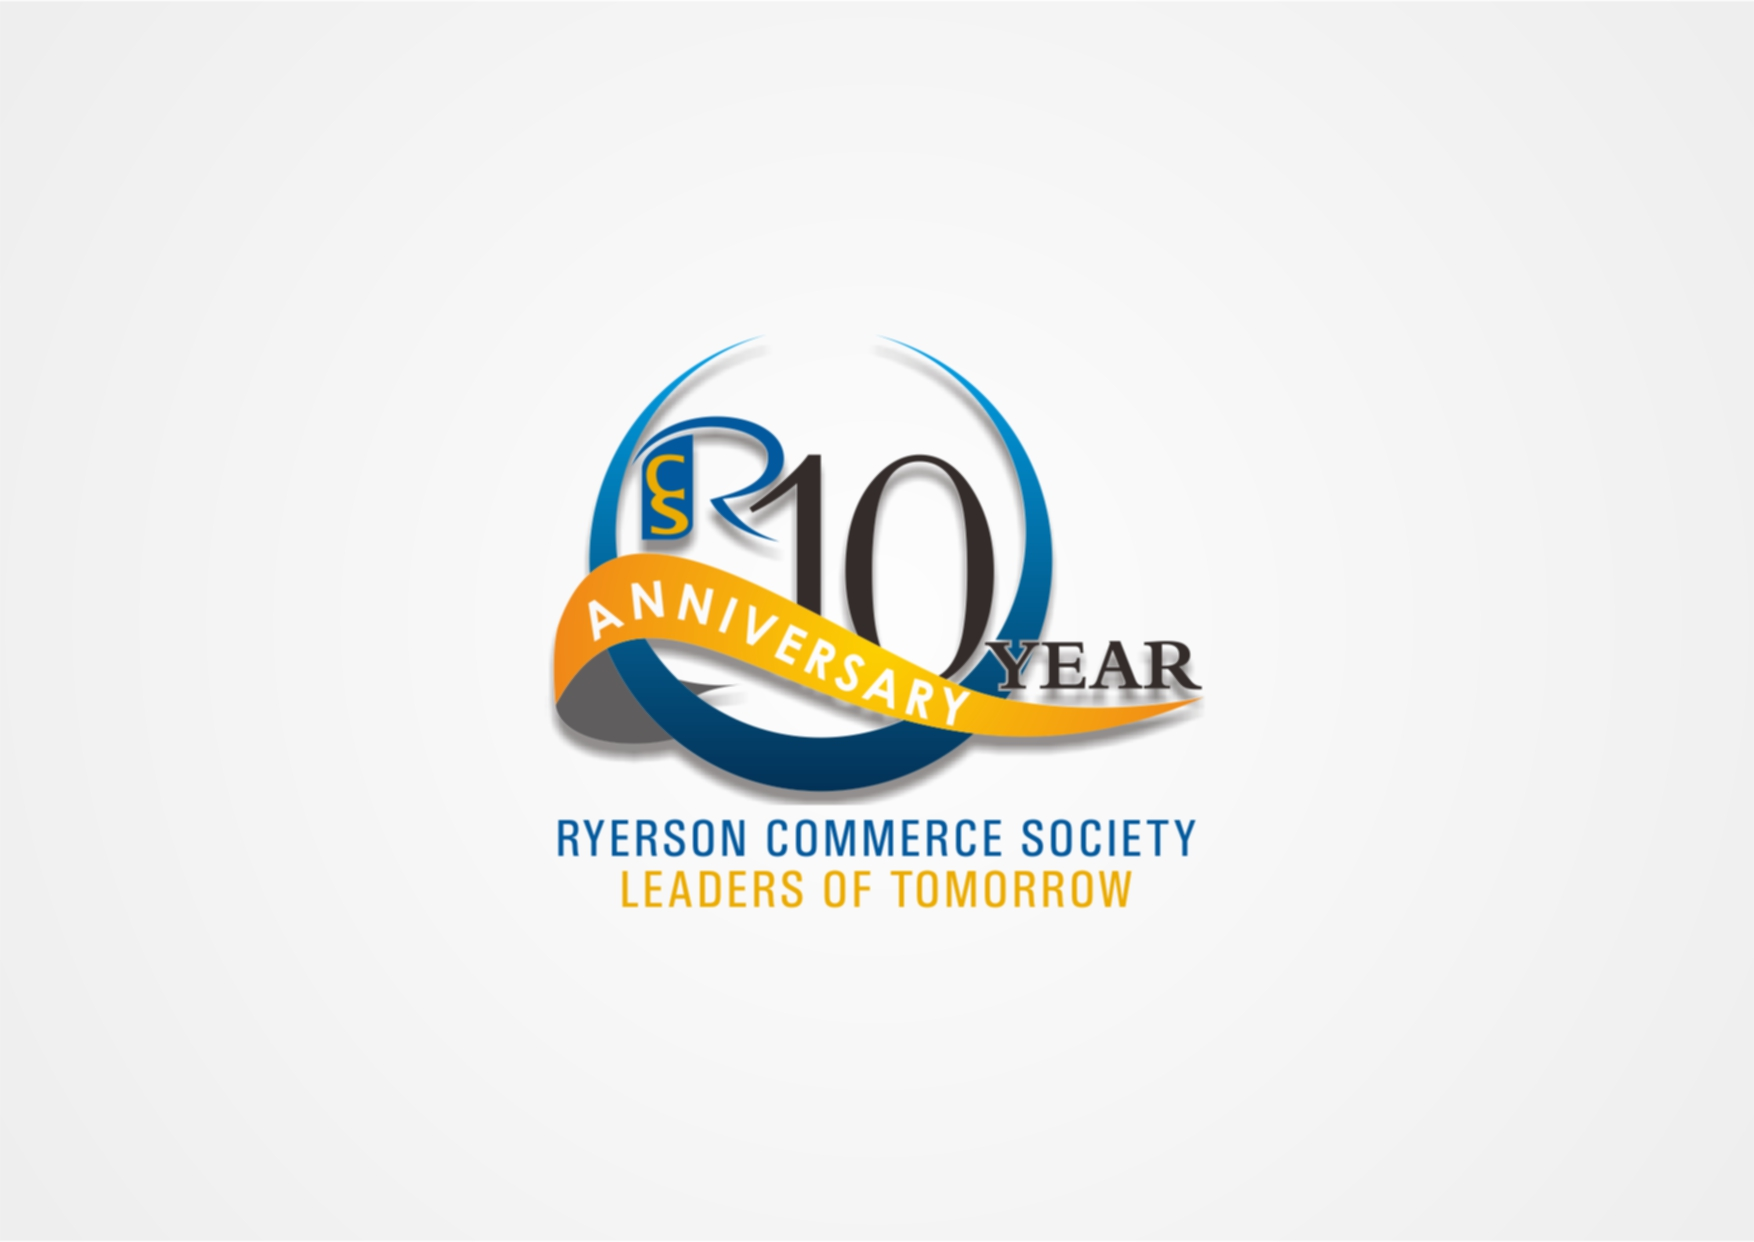 Logo Design by Private User - Entry No. 36 in the Logo Design Contest 10 Year Anniversary Logo Design for the Ryerson Commerce Society.